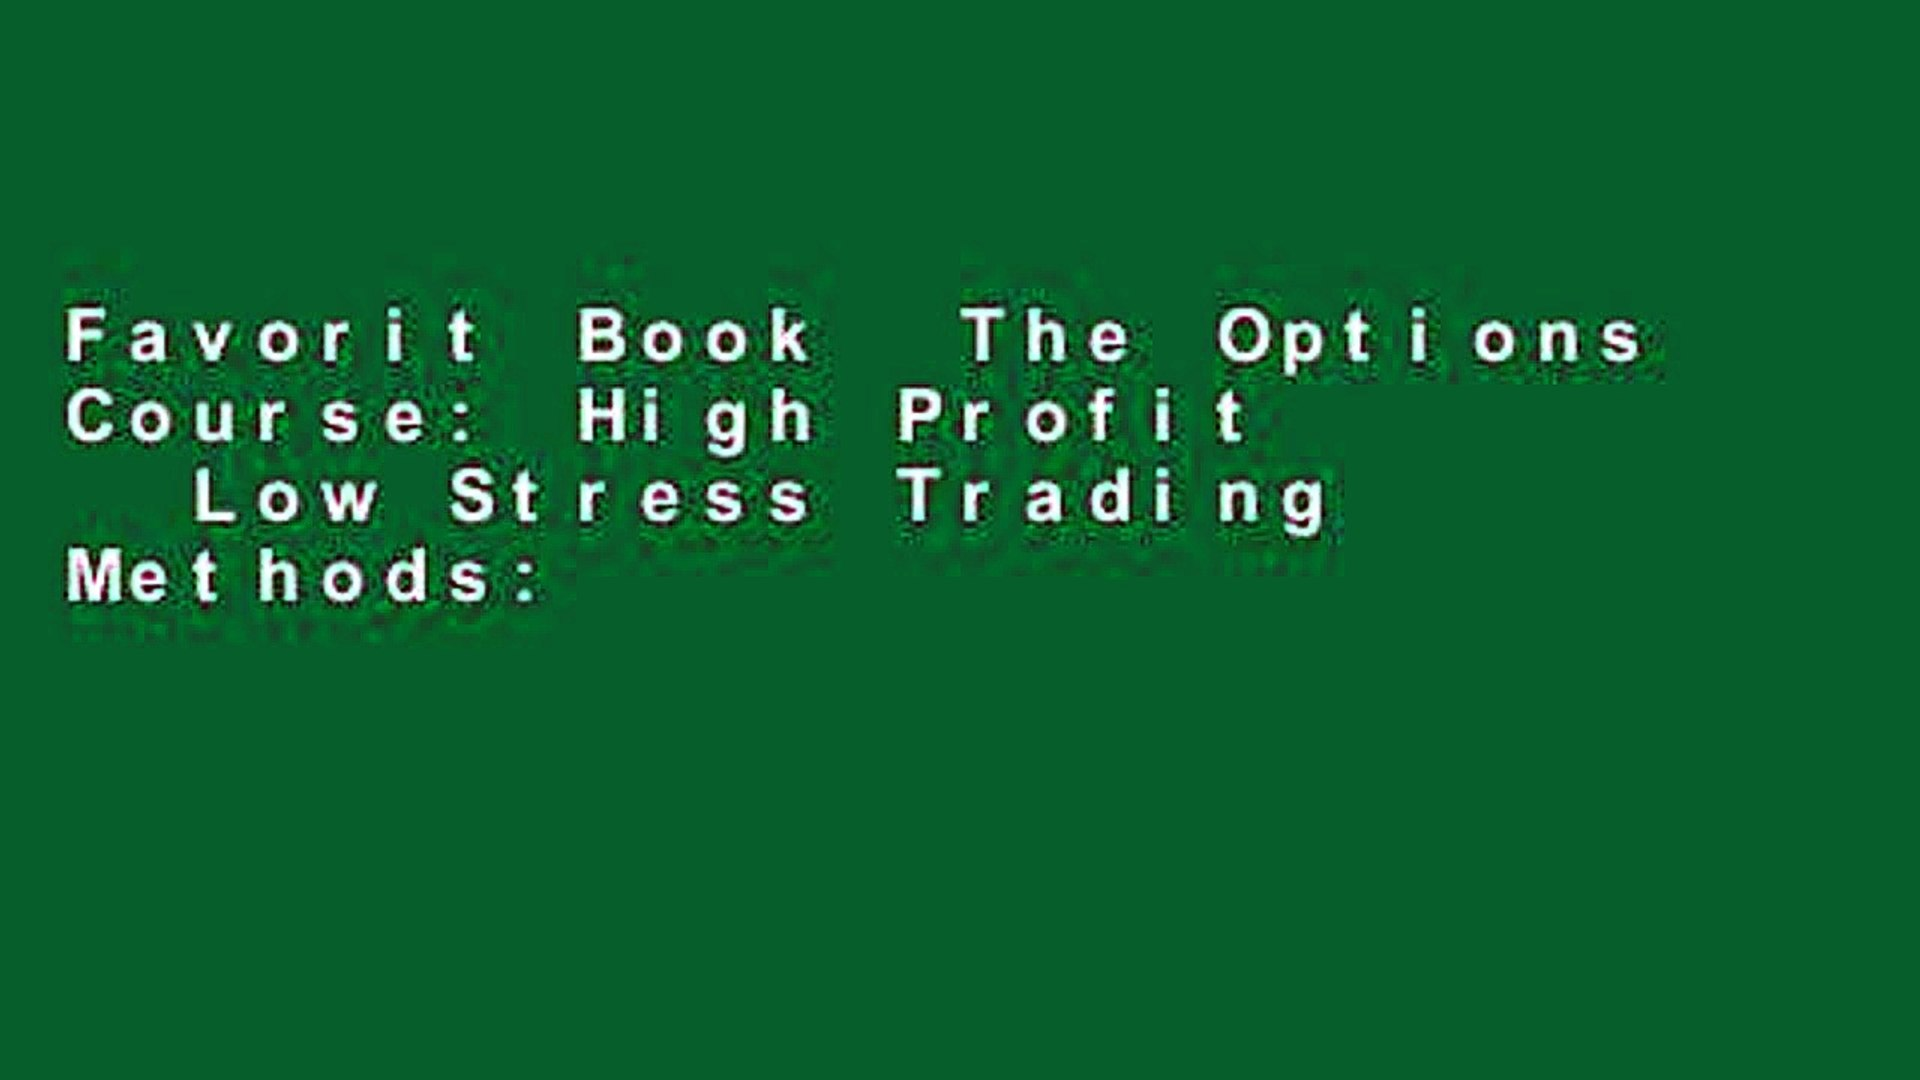 Favorit Book  The Options Course: High Profit   Low Stress Trading Methods: High Profit and Low